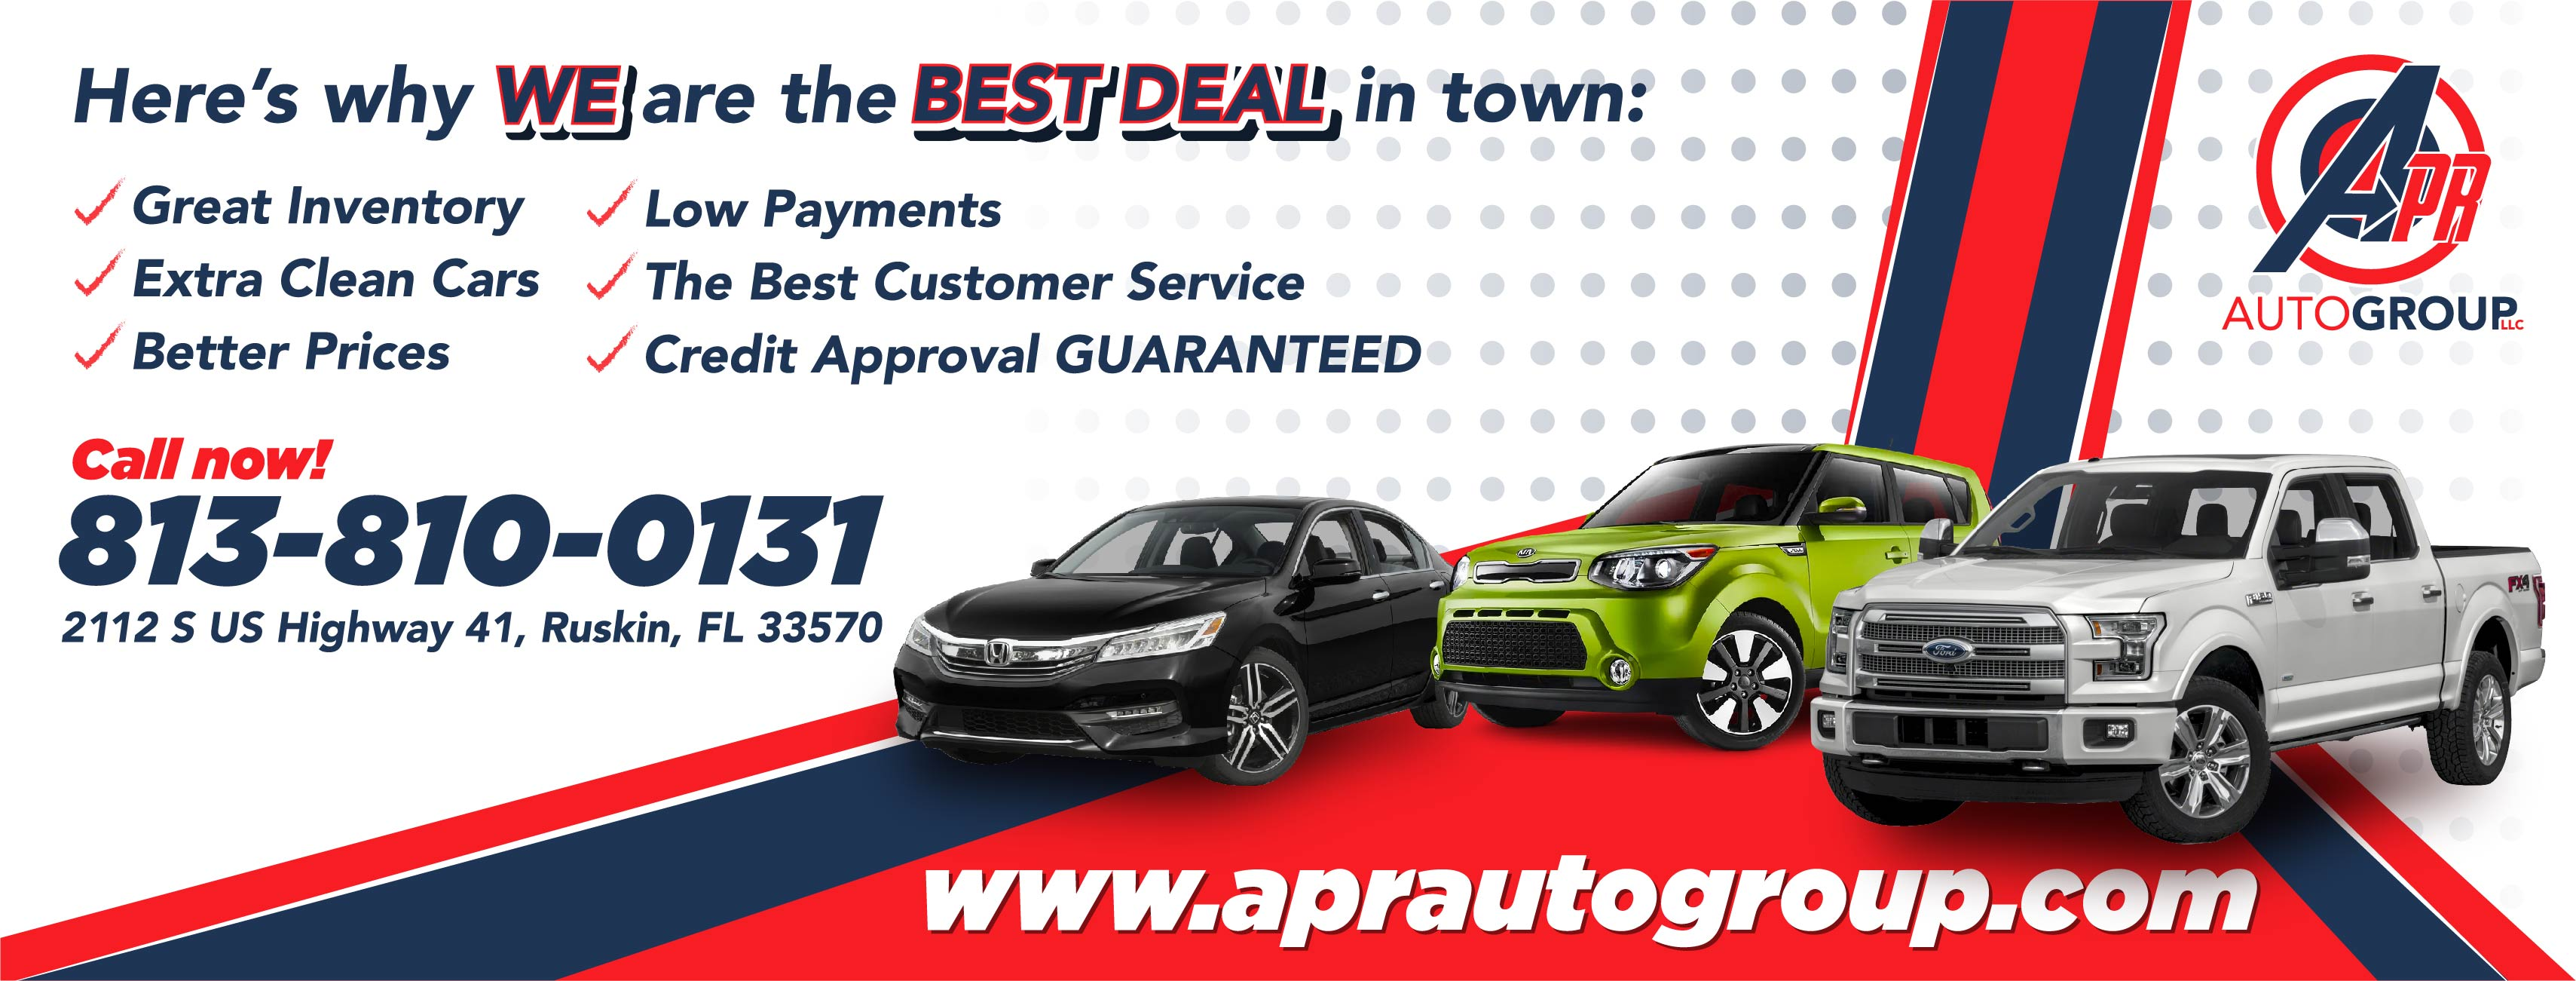 APR Auto Group LLC reviews   Used Car Dealers at 2112 S U.S. Hwy 41 - Ruskin FL